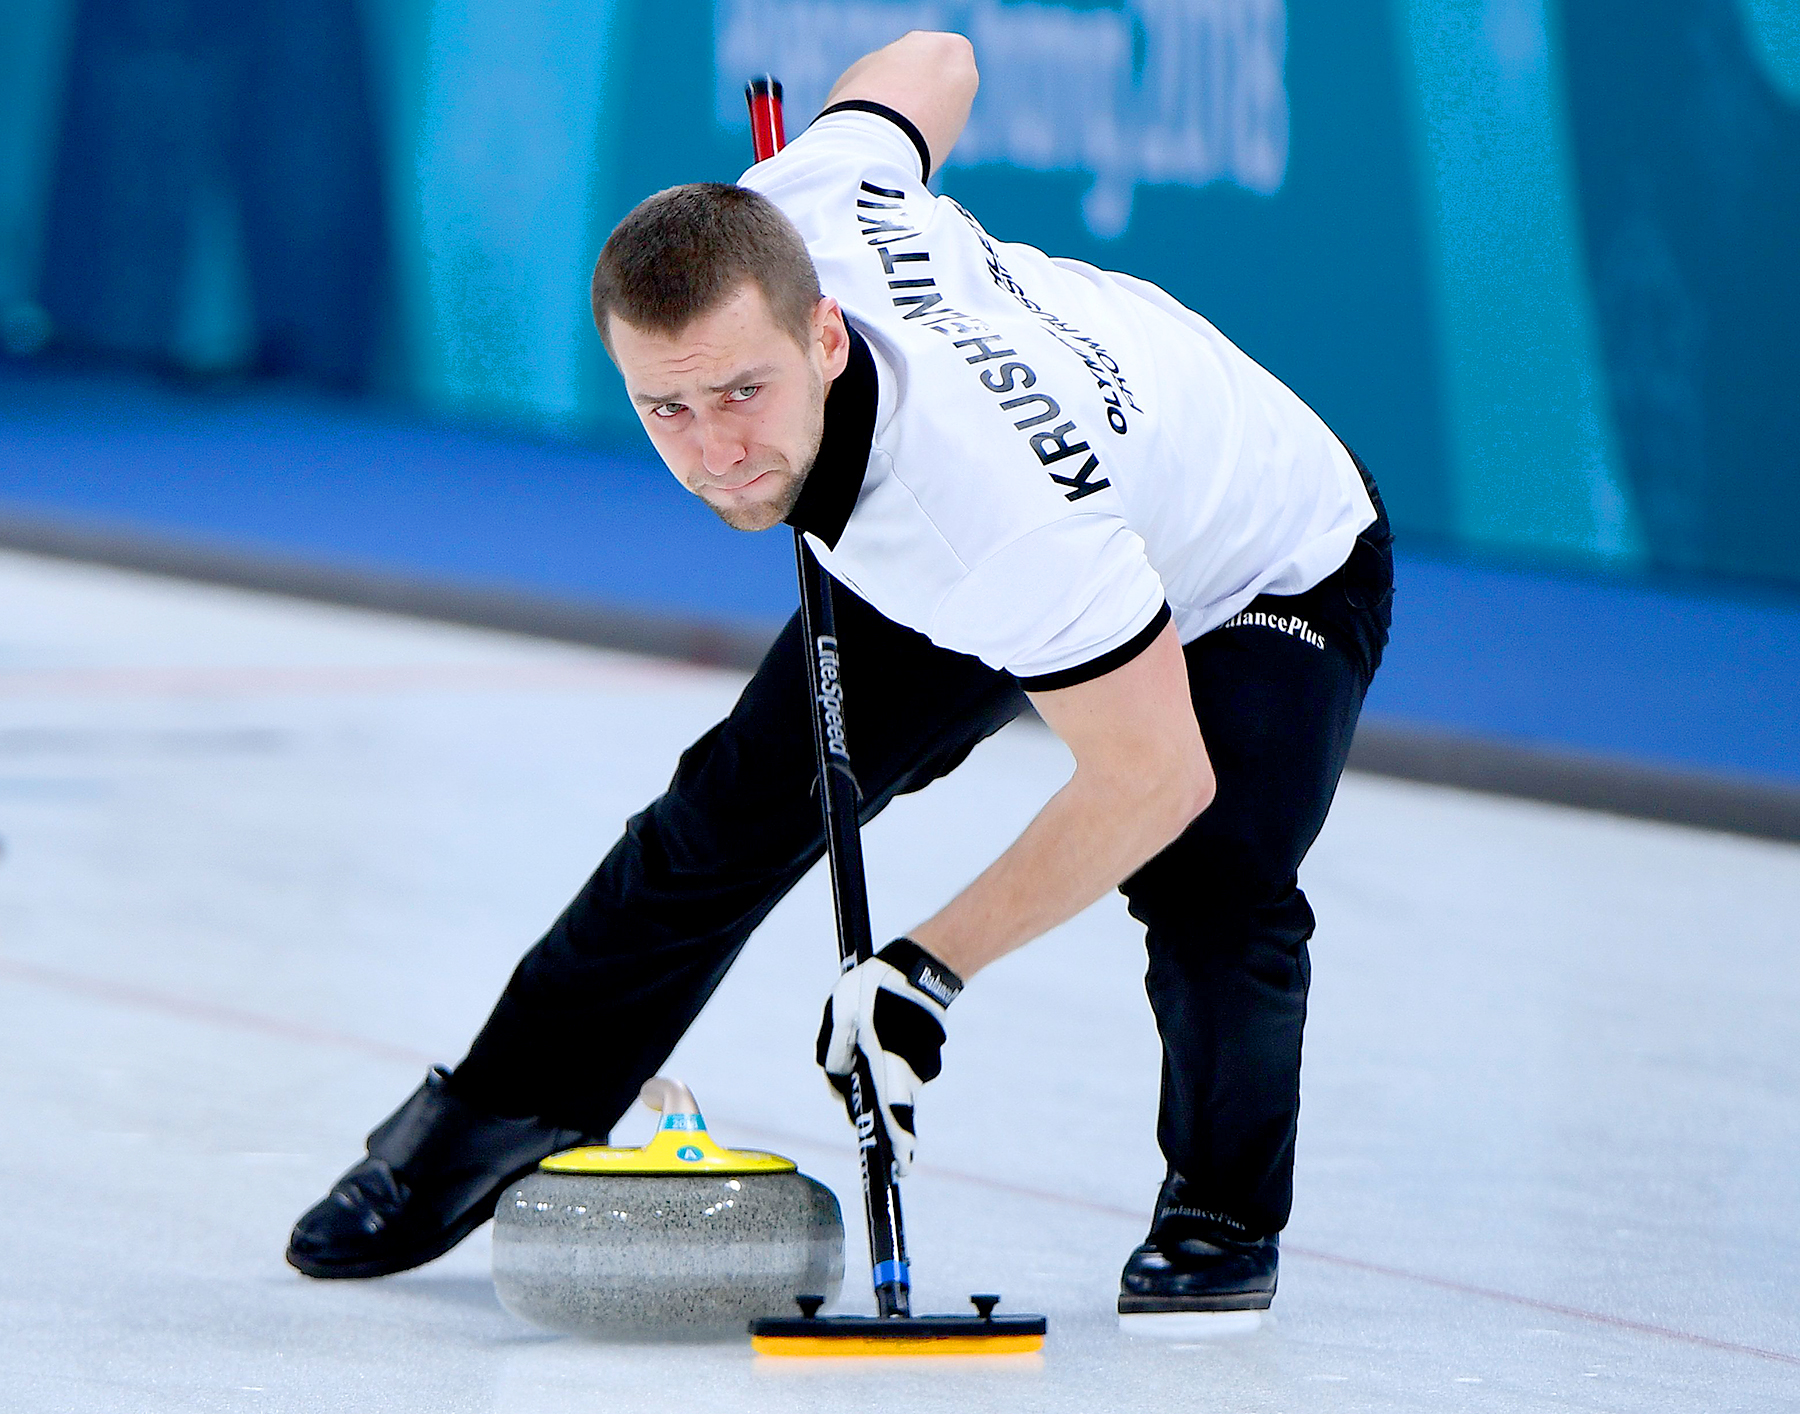 Russian curlers stripped of Olympic bronze medal over doping